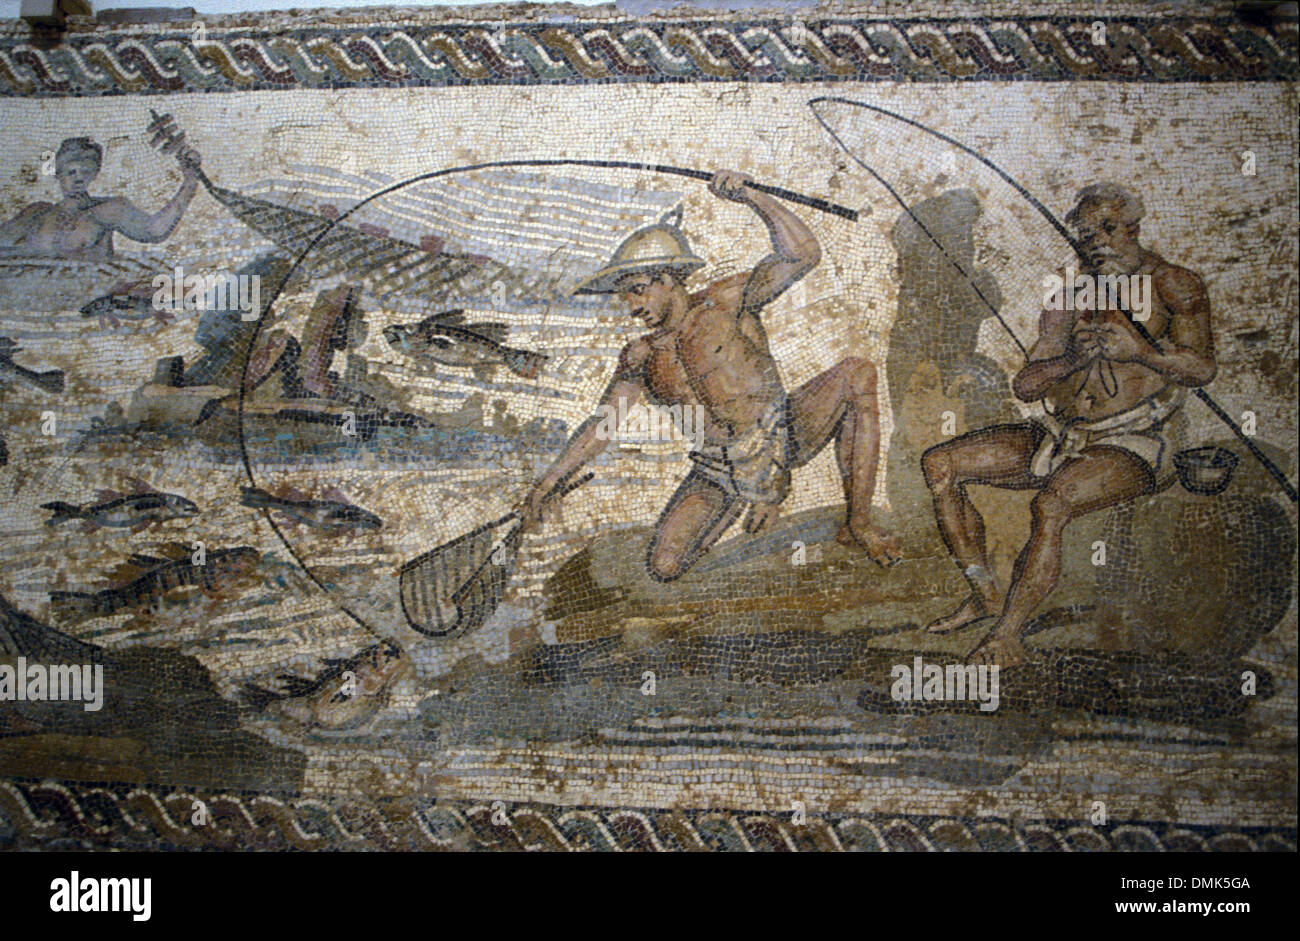 fishermen-mosaic-from-the-villa-the-nile-mosaic-near-lepcis-magna-DMK5GA.jpg